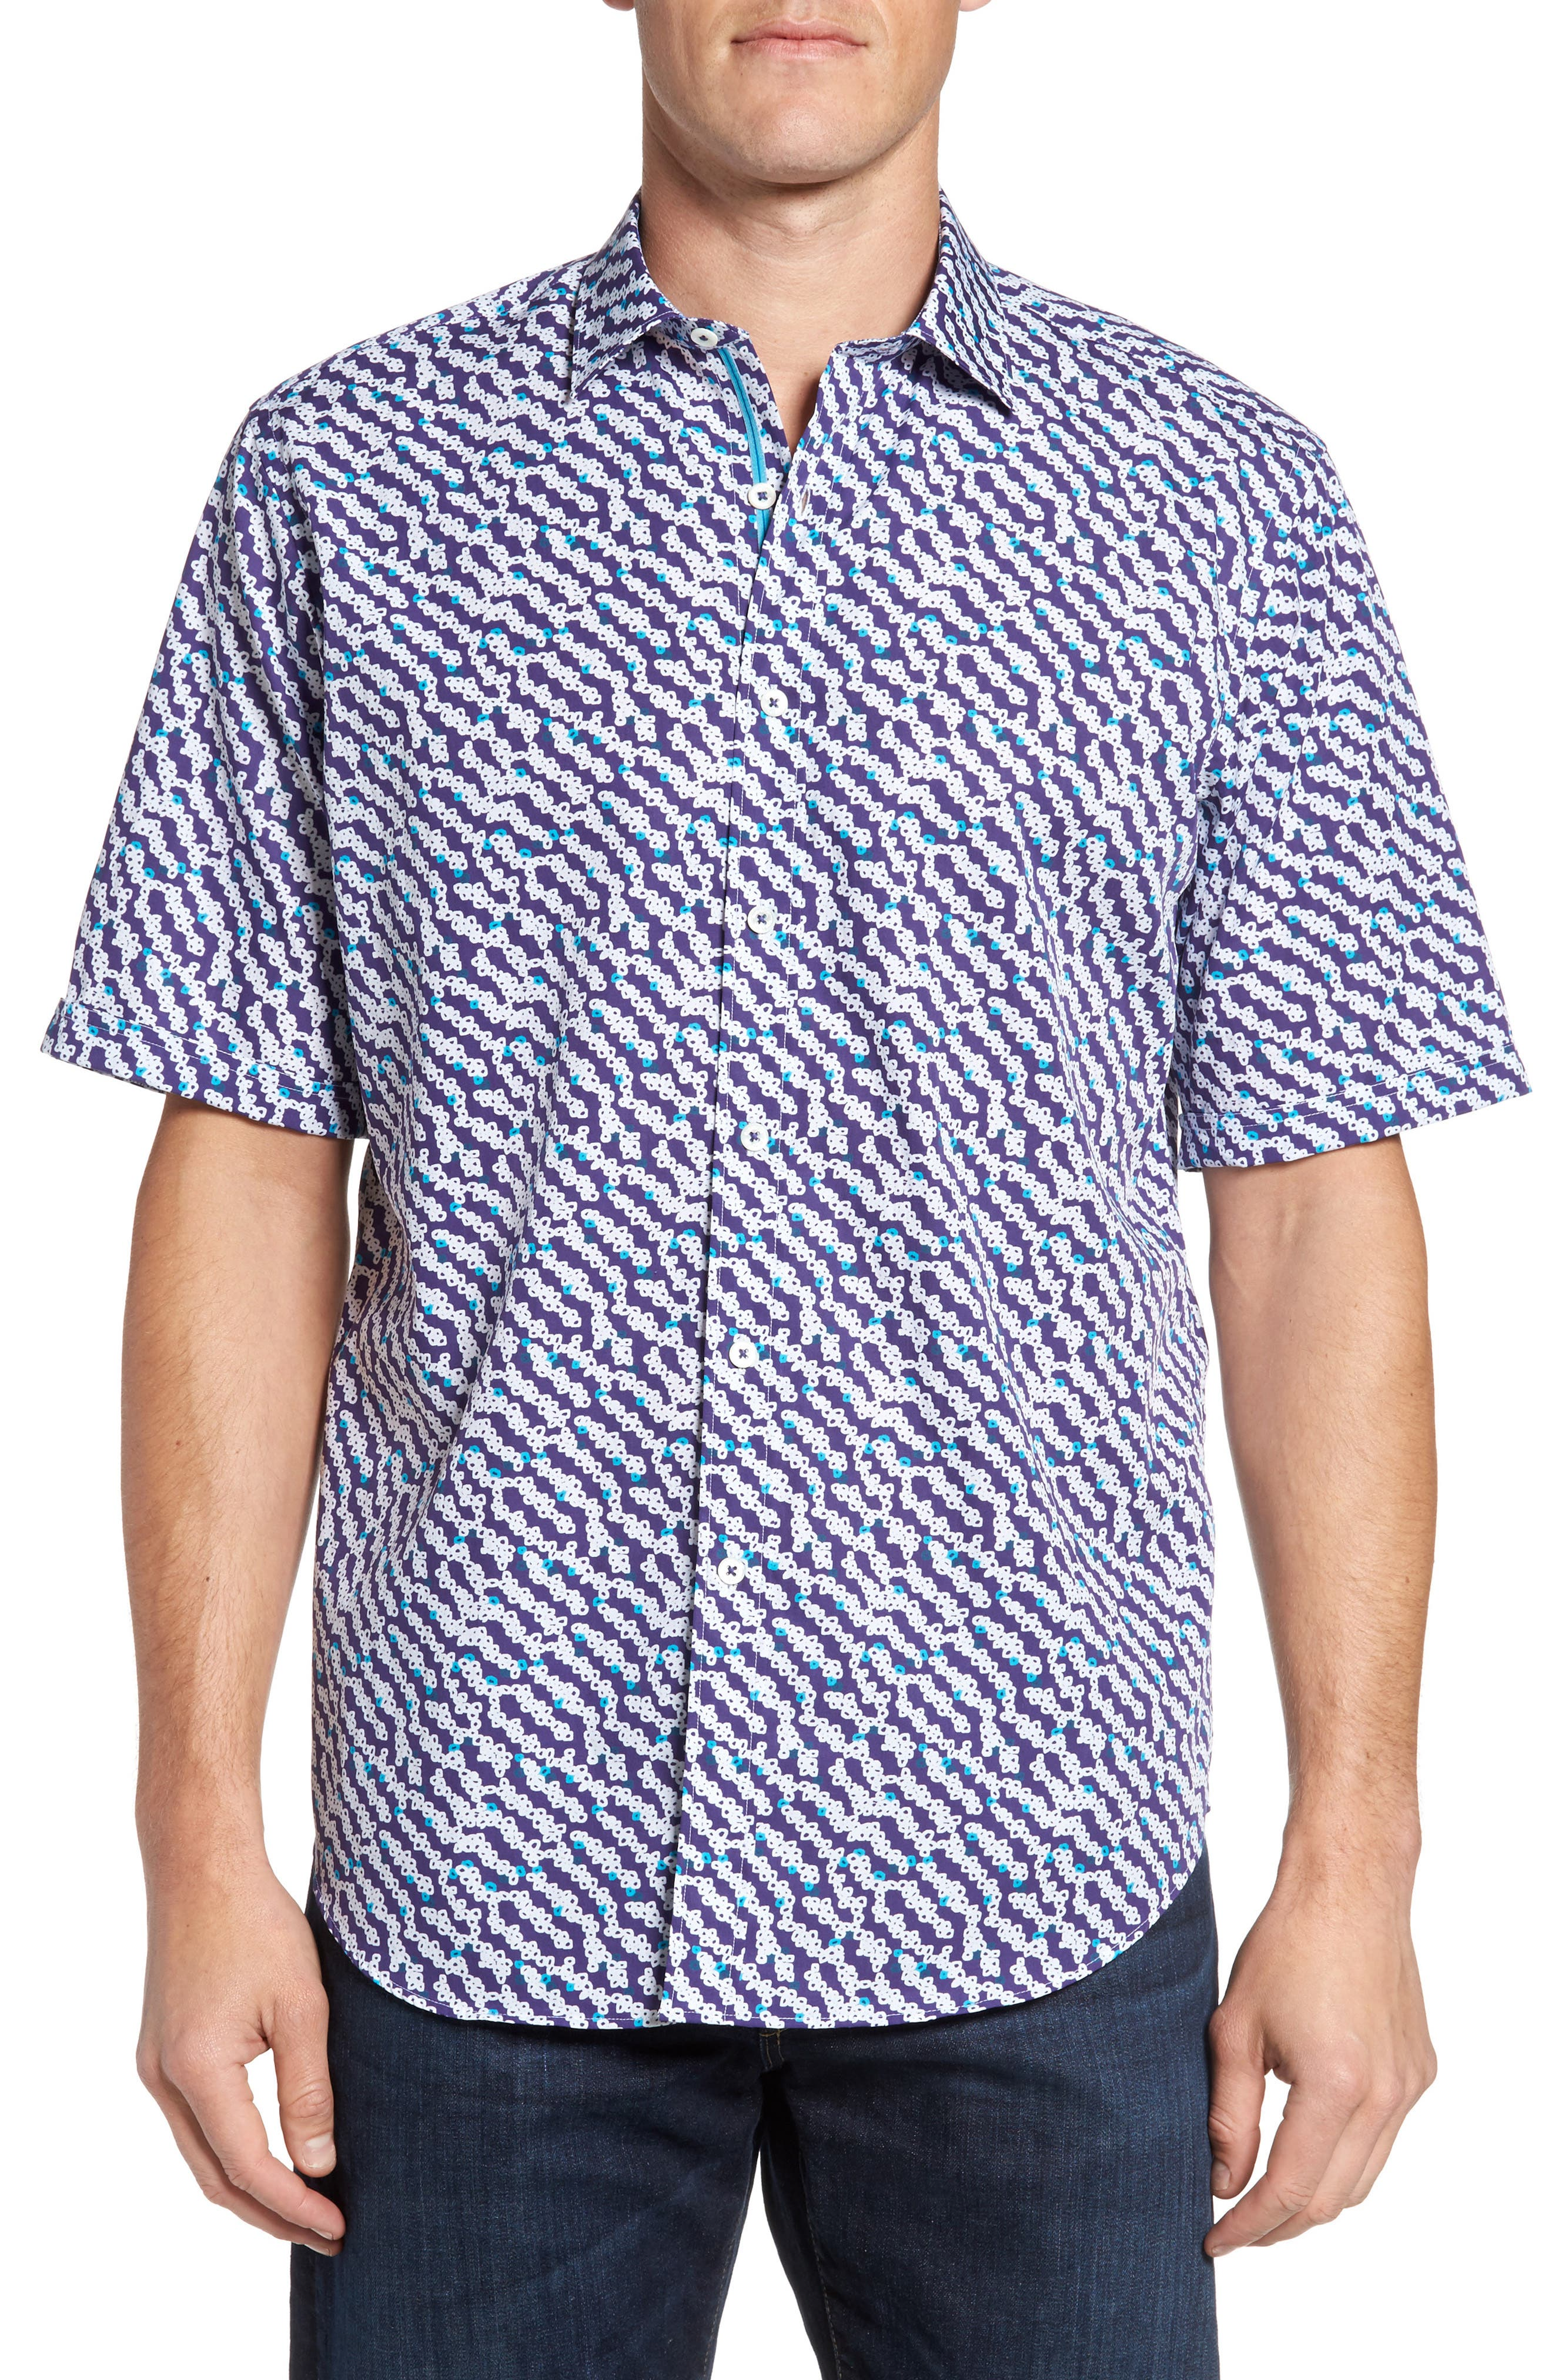 Alternate Image 1 Selected - Bugatchi Classic Fit Print Short Sleeve Sport Shirt